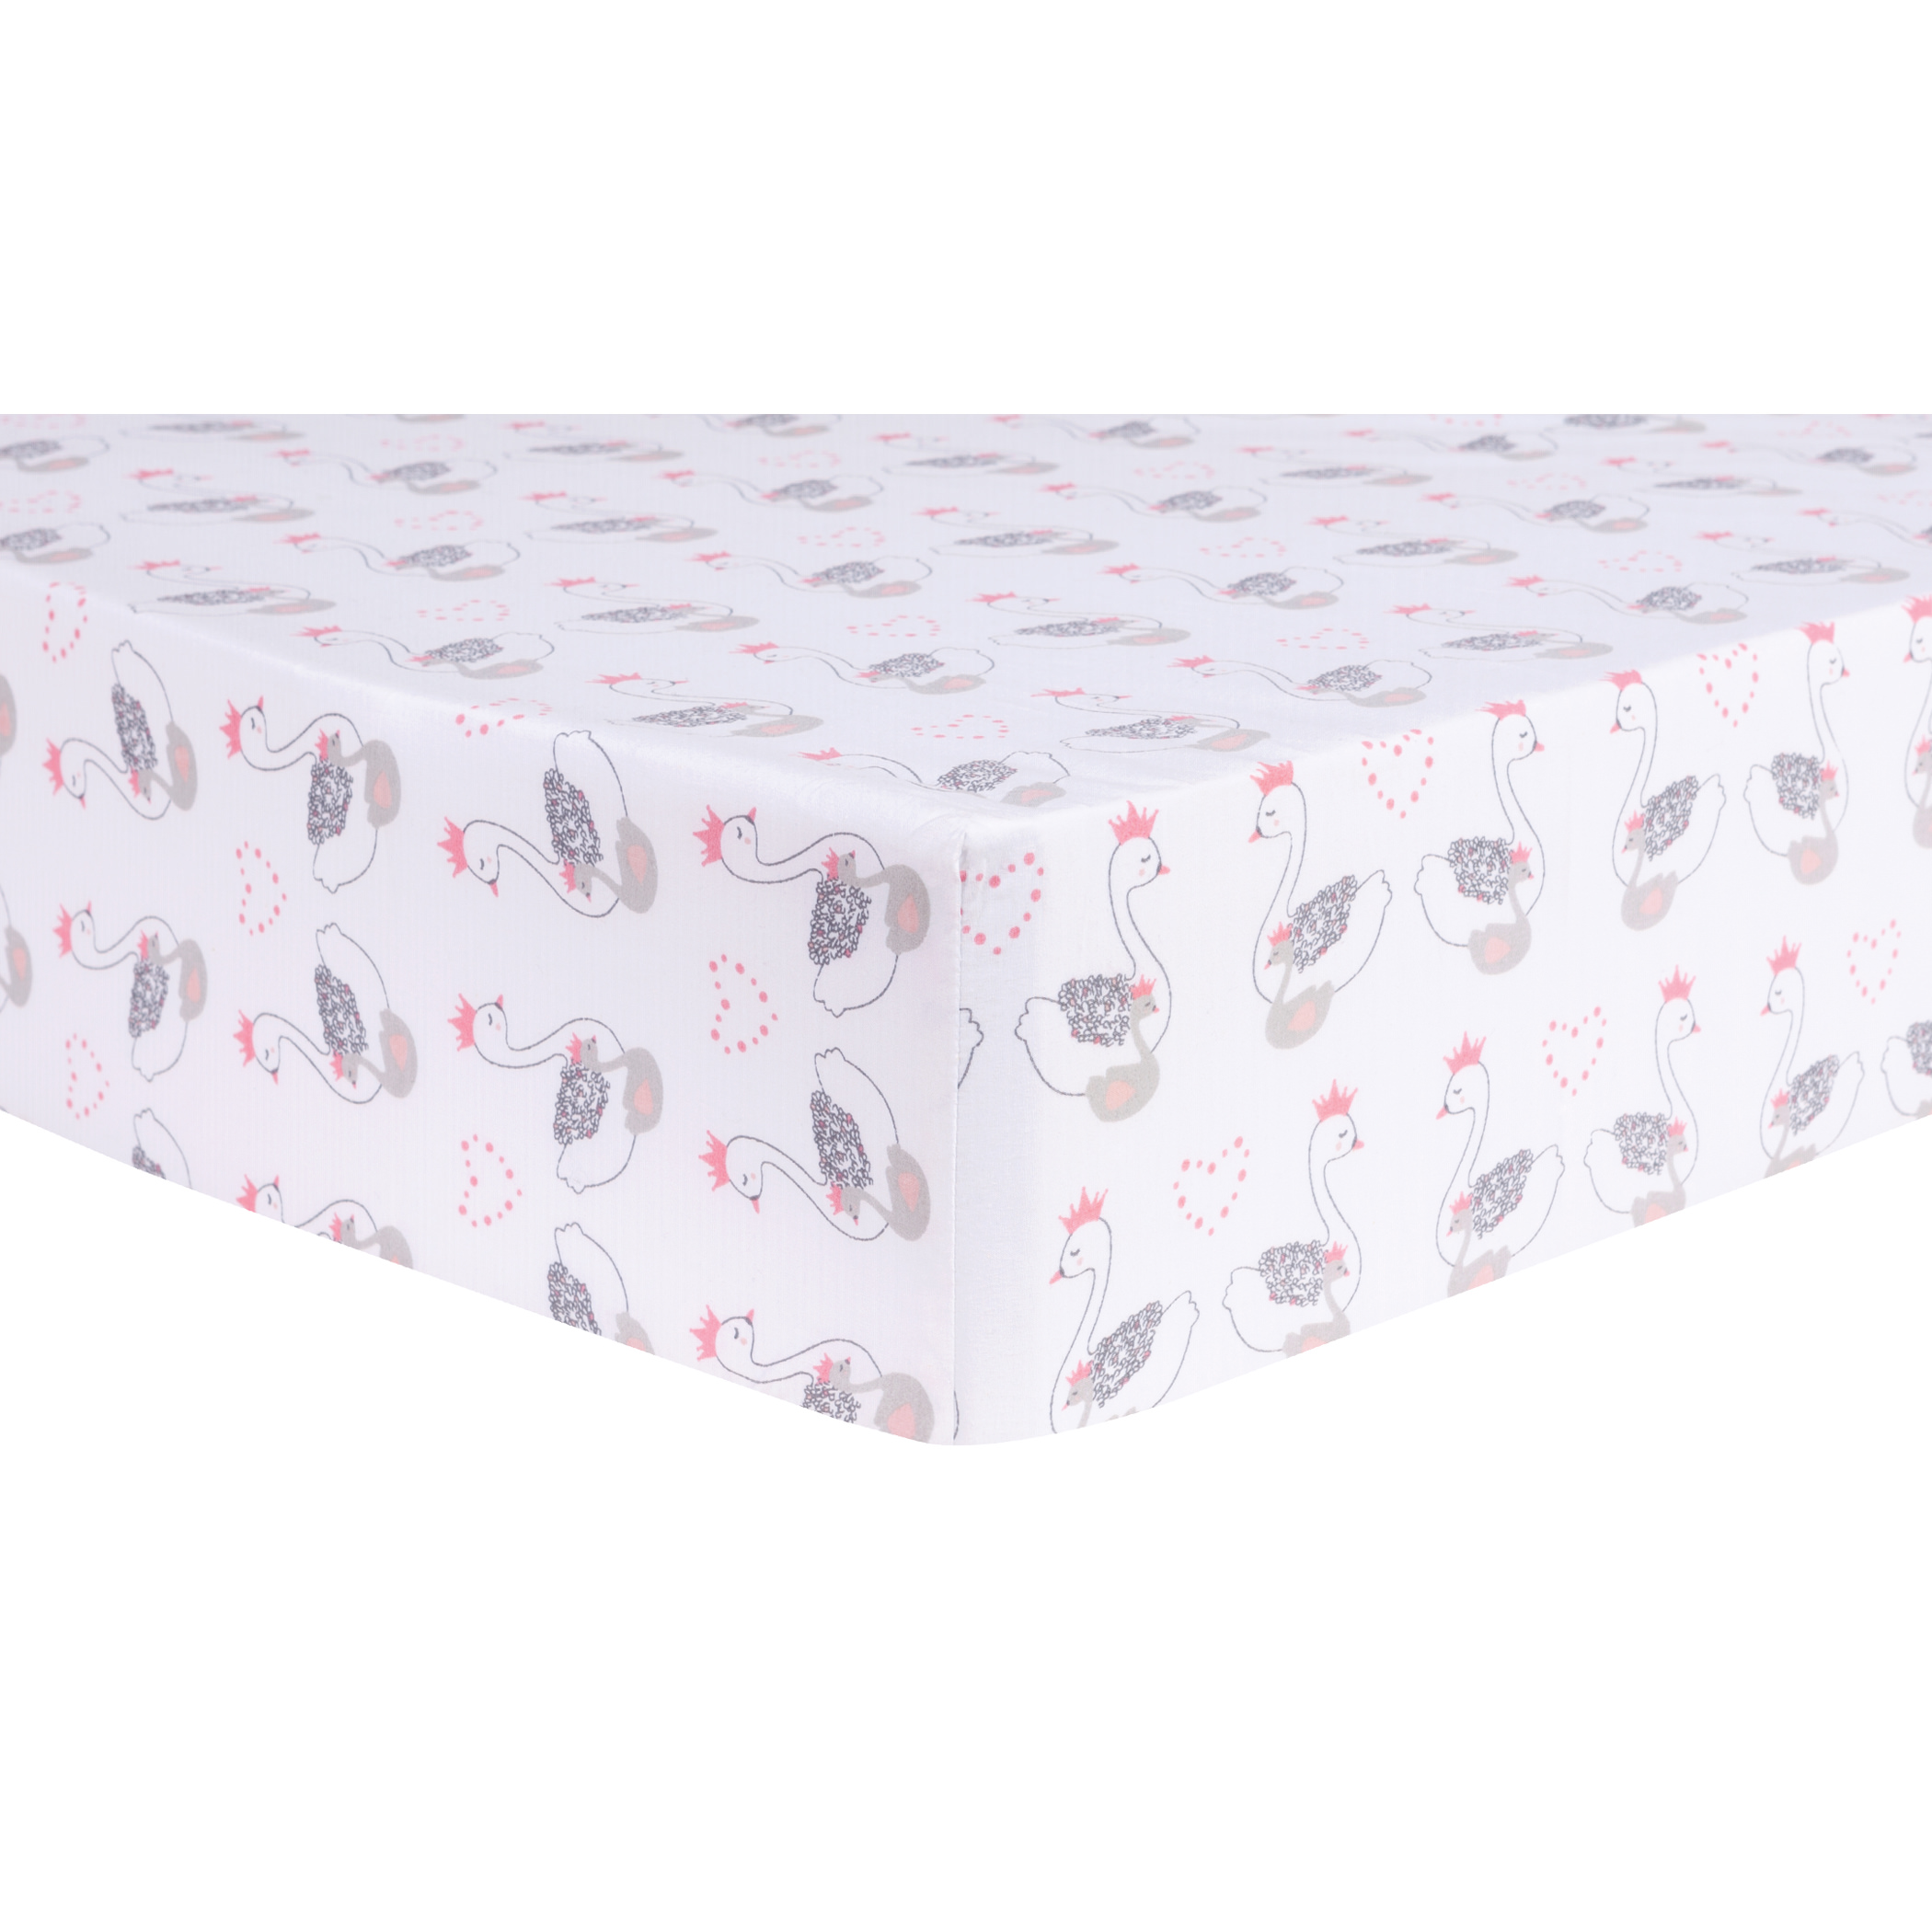 Swans Fitted Crib Sheet